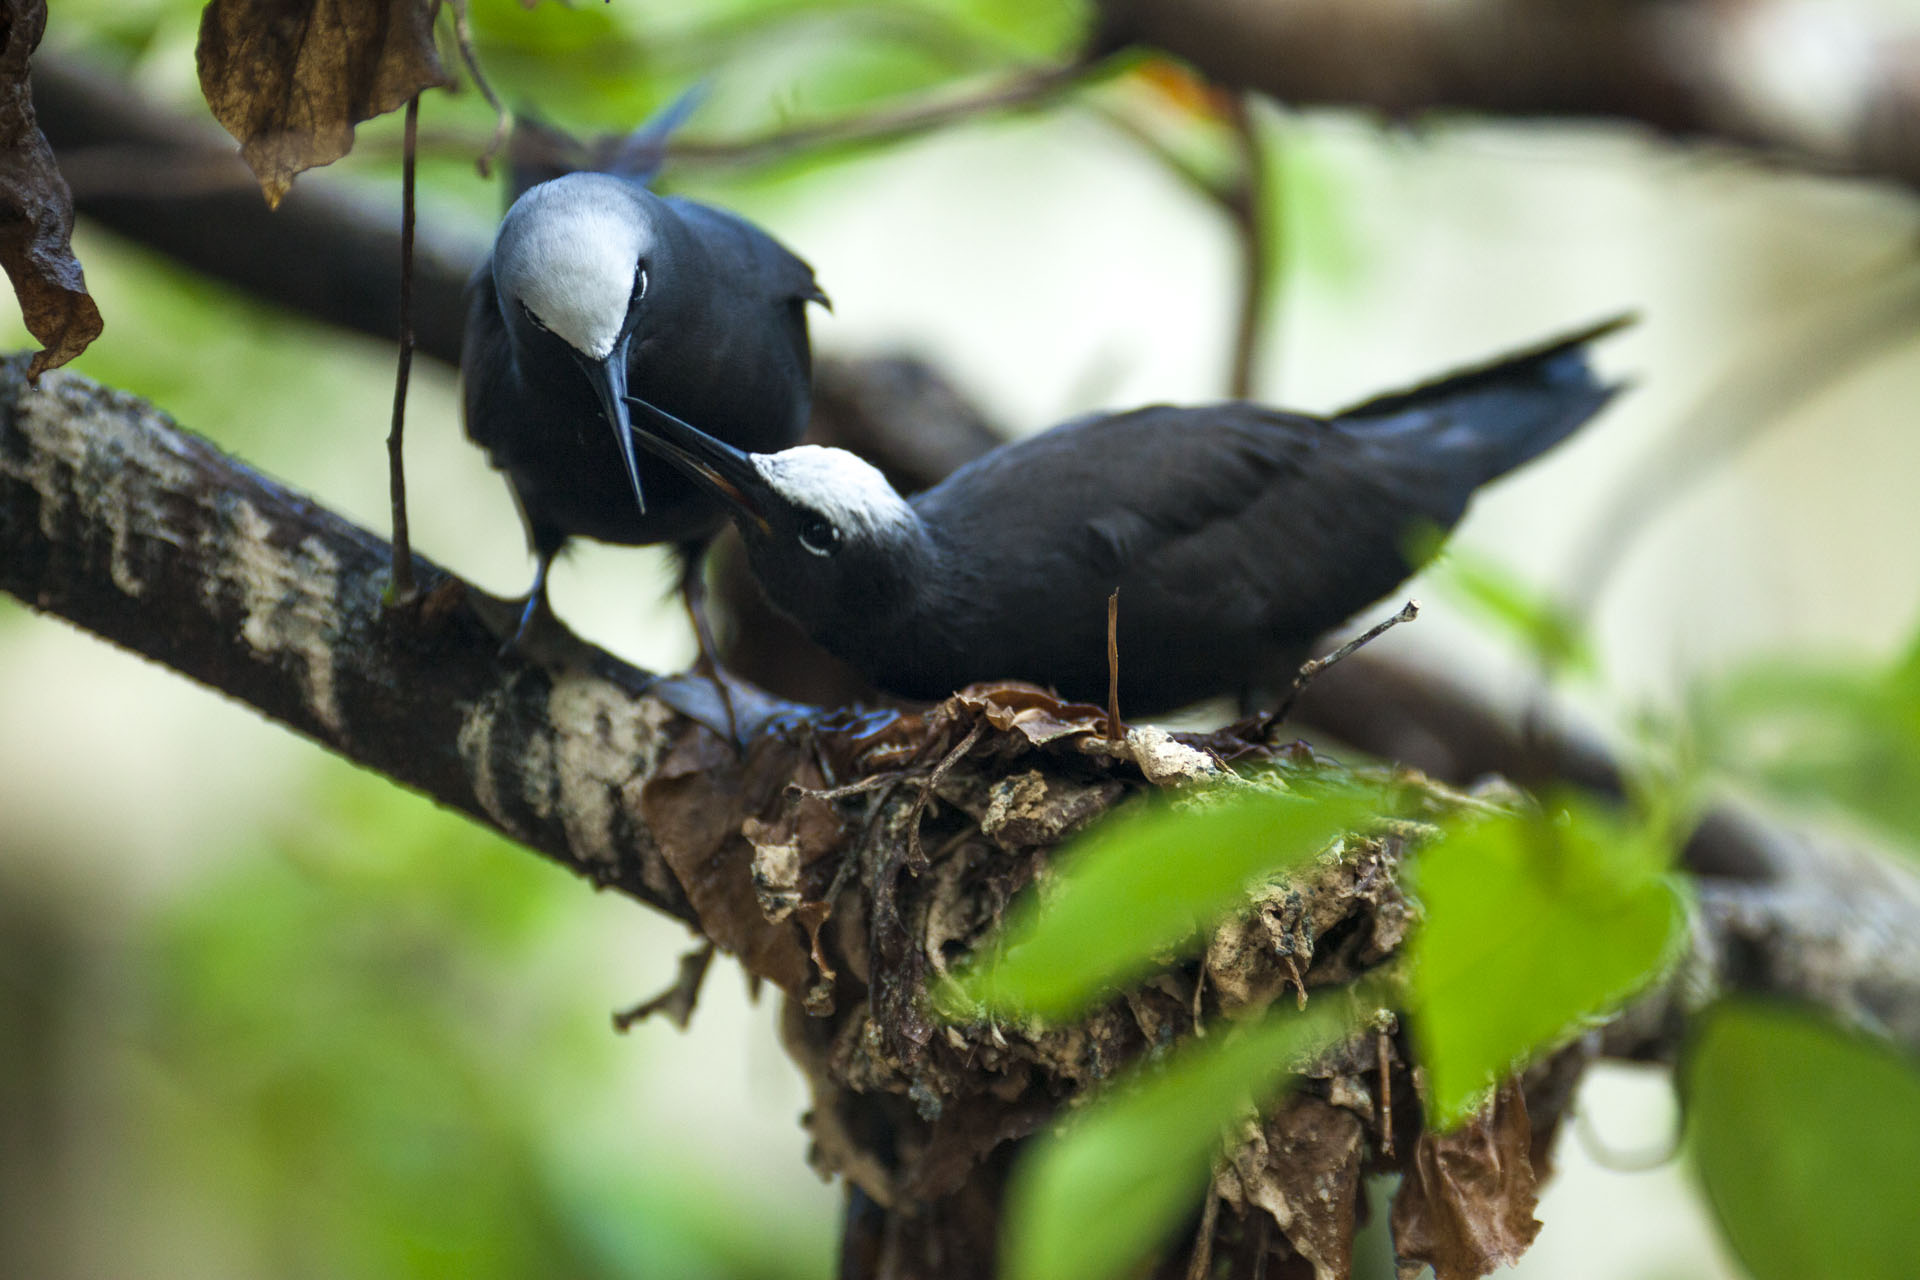 Black Noddies are tree-nesting. They are essential for the nutrient processes that support the island's vegetation.